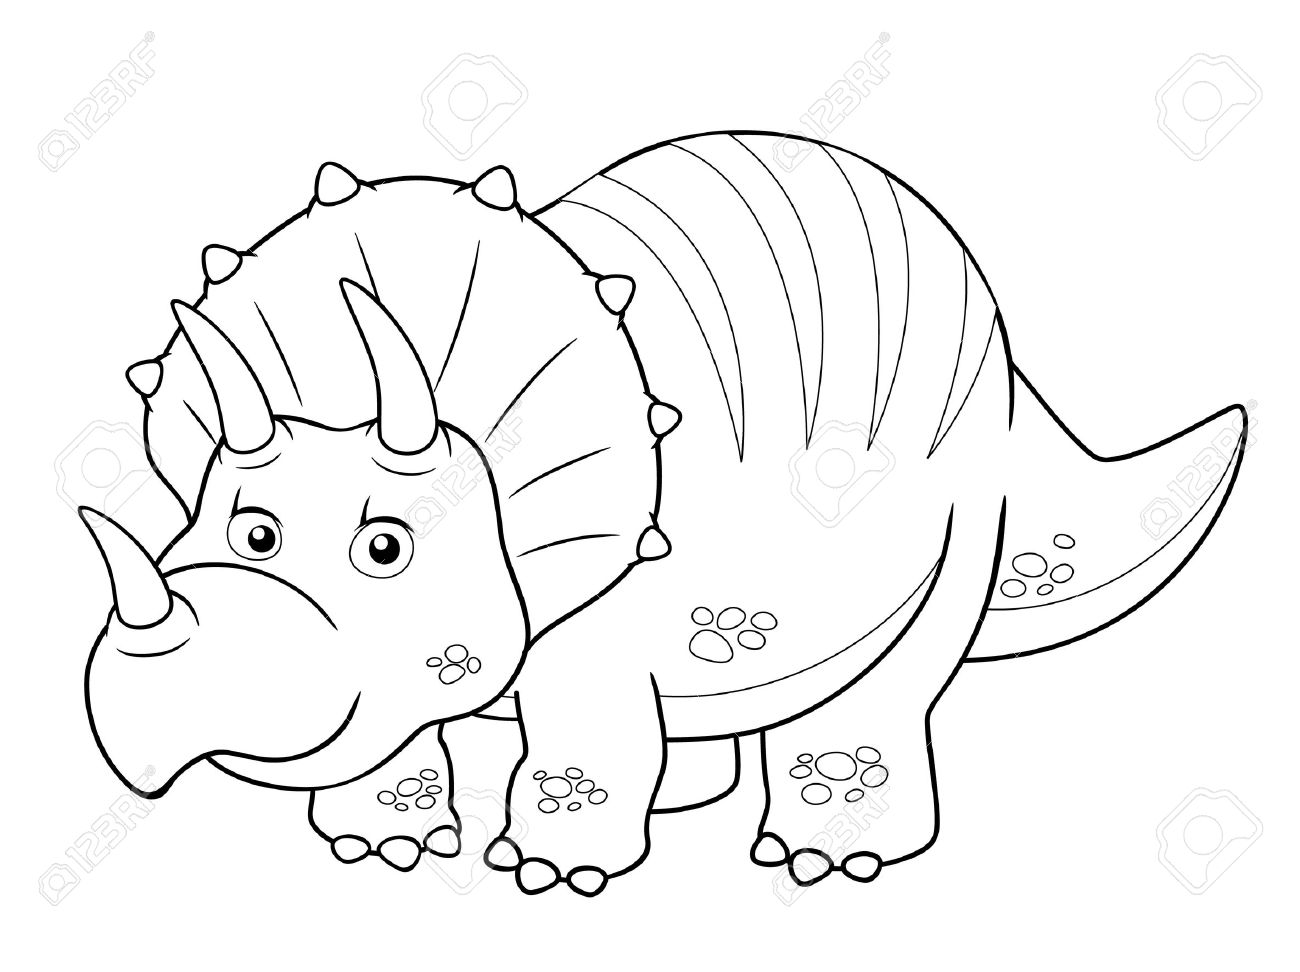 illustration of cartoon dinosaur outline stock vector 16392822